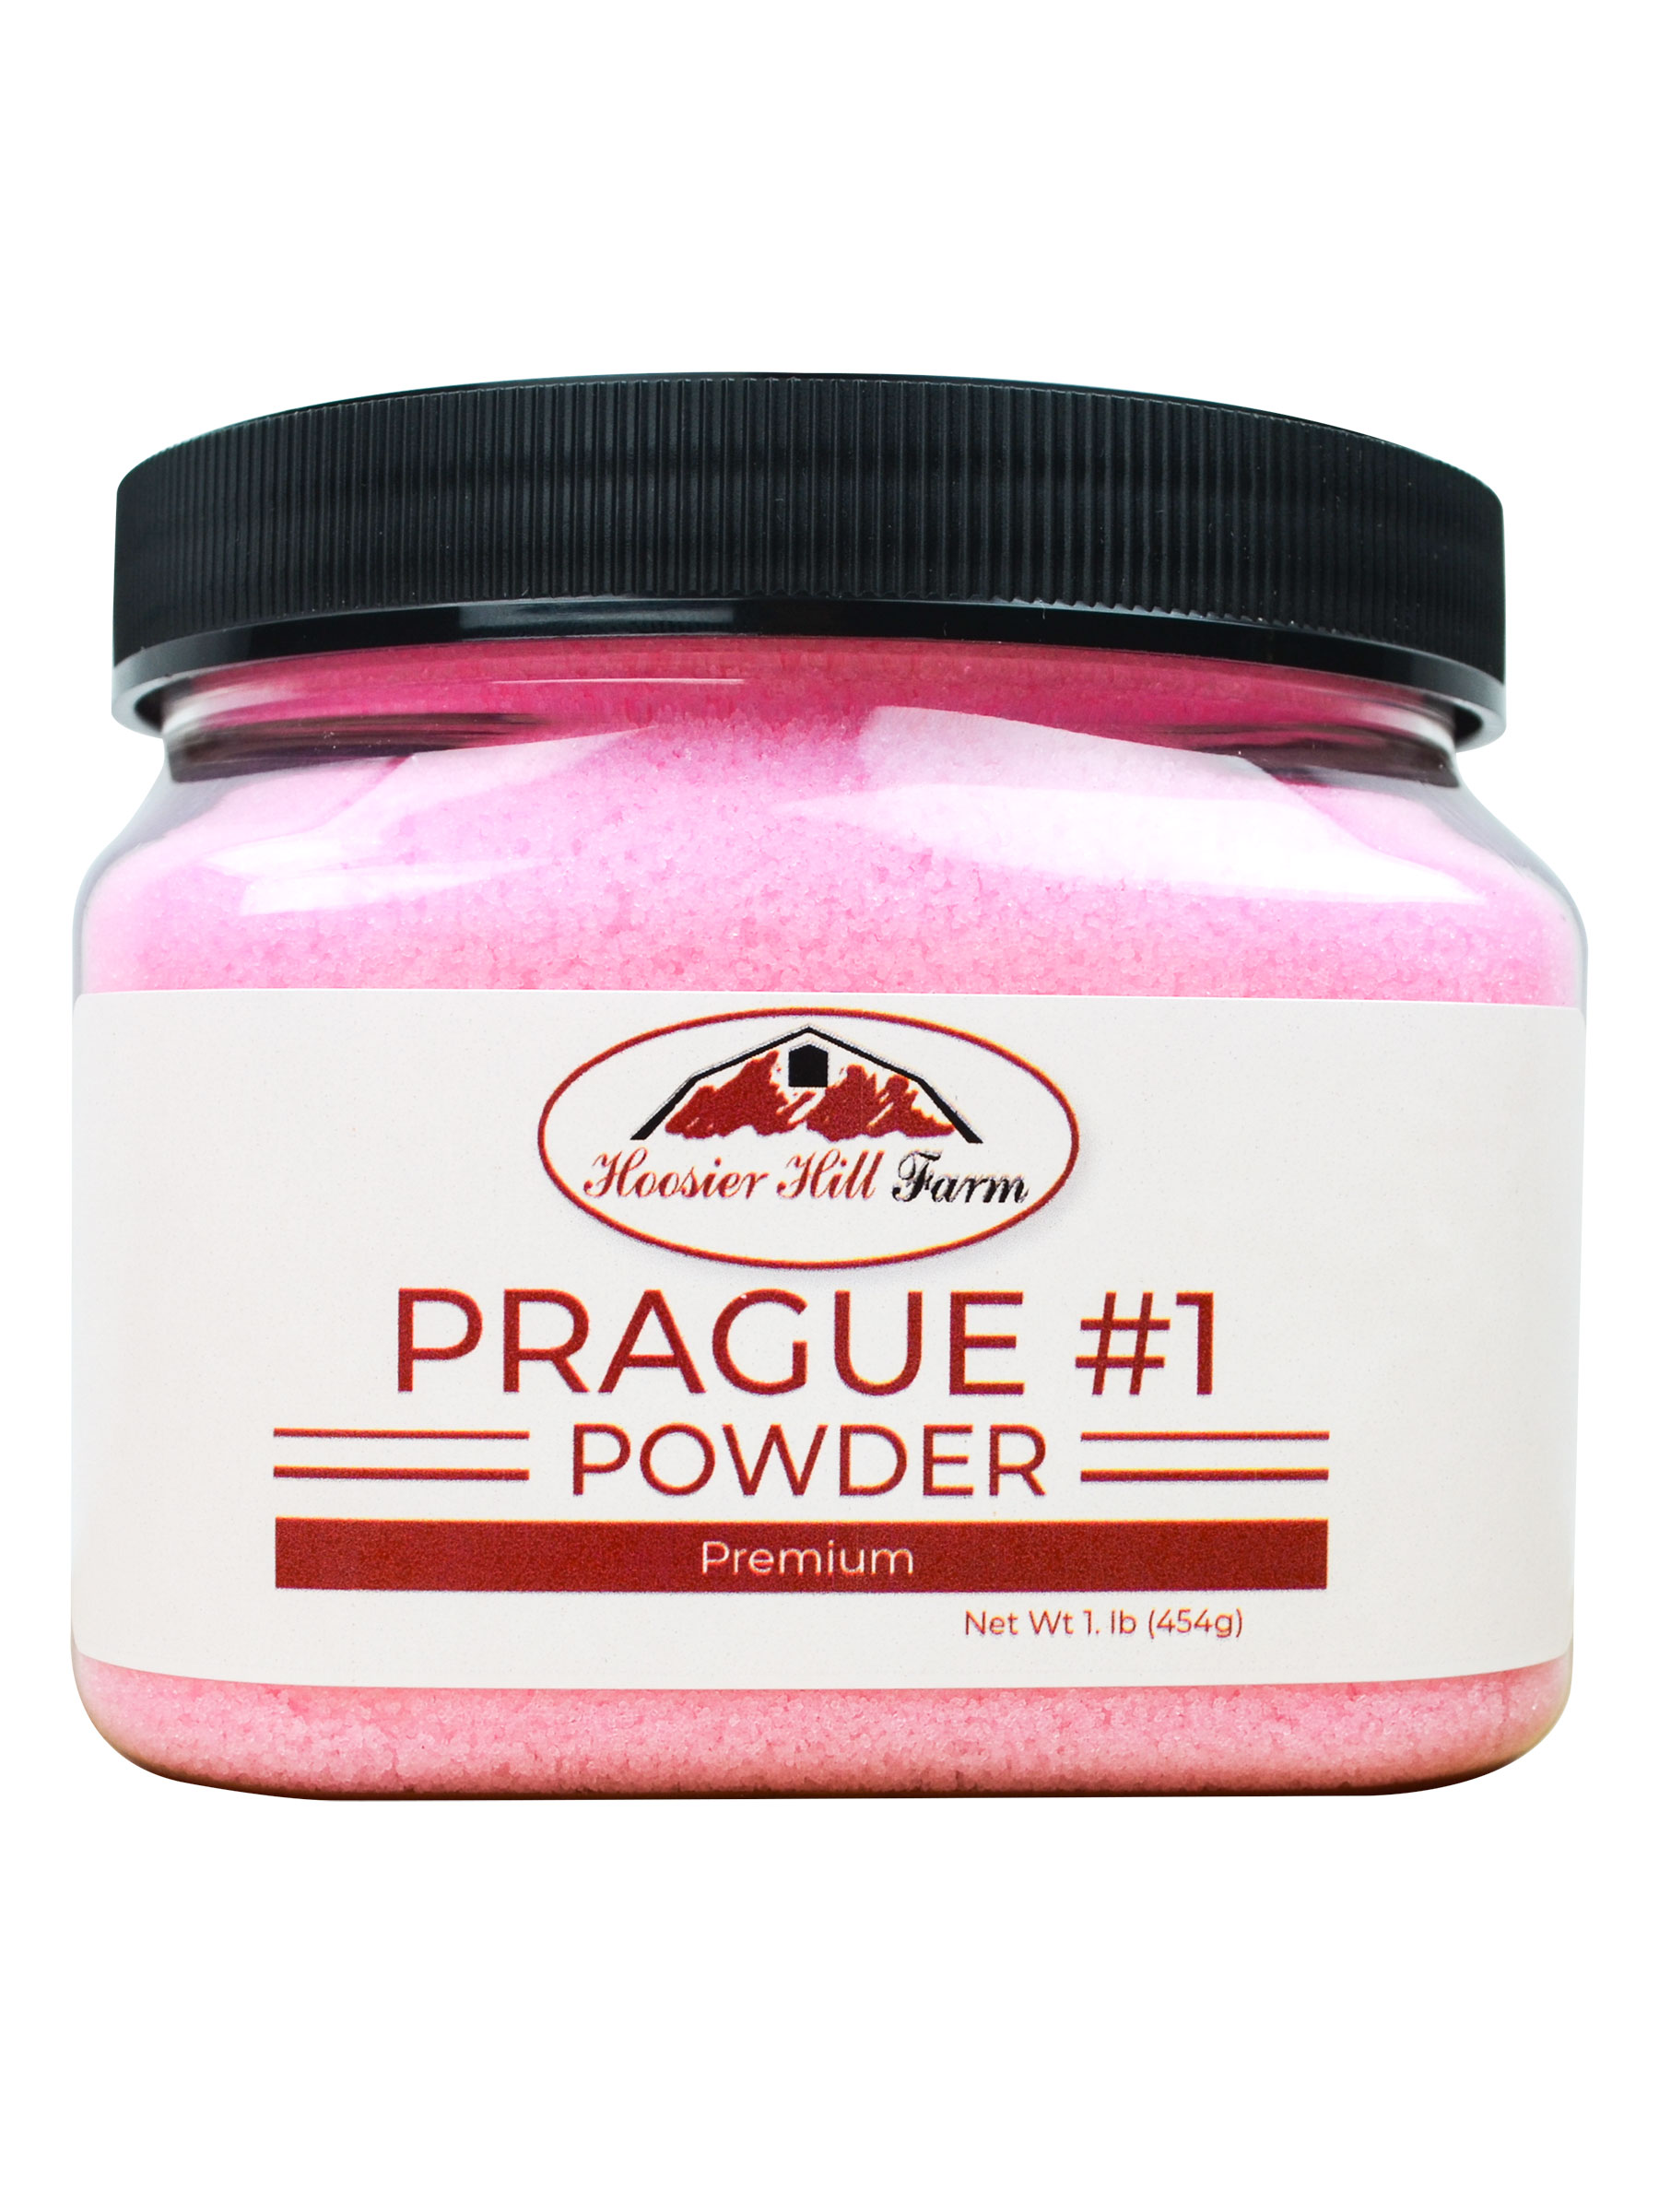 Hoosier Hill Farm Prague Powder No. 1 Curing Salt, Pink, 1 Pound